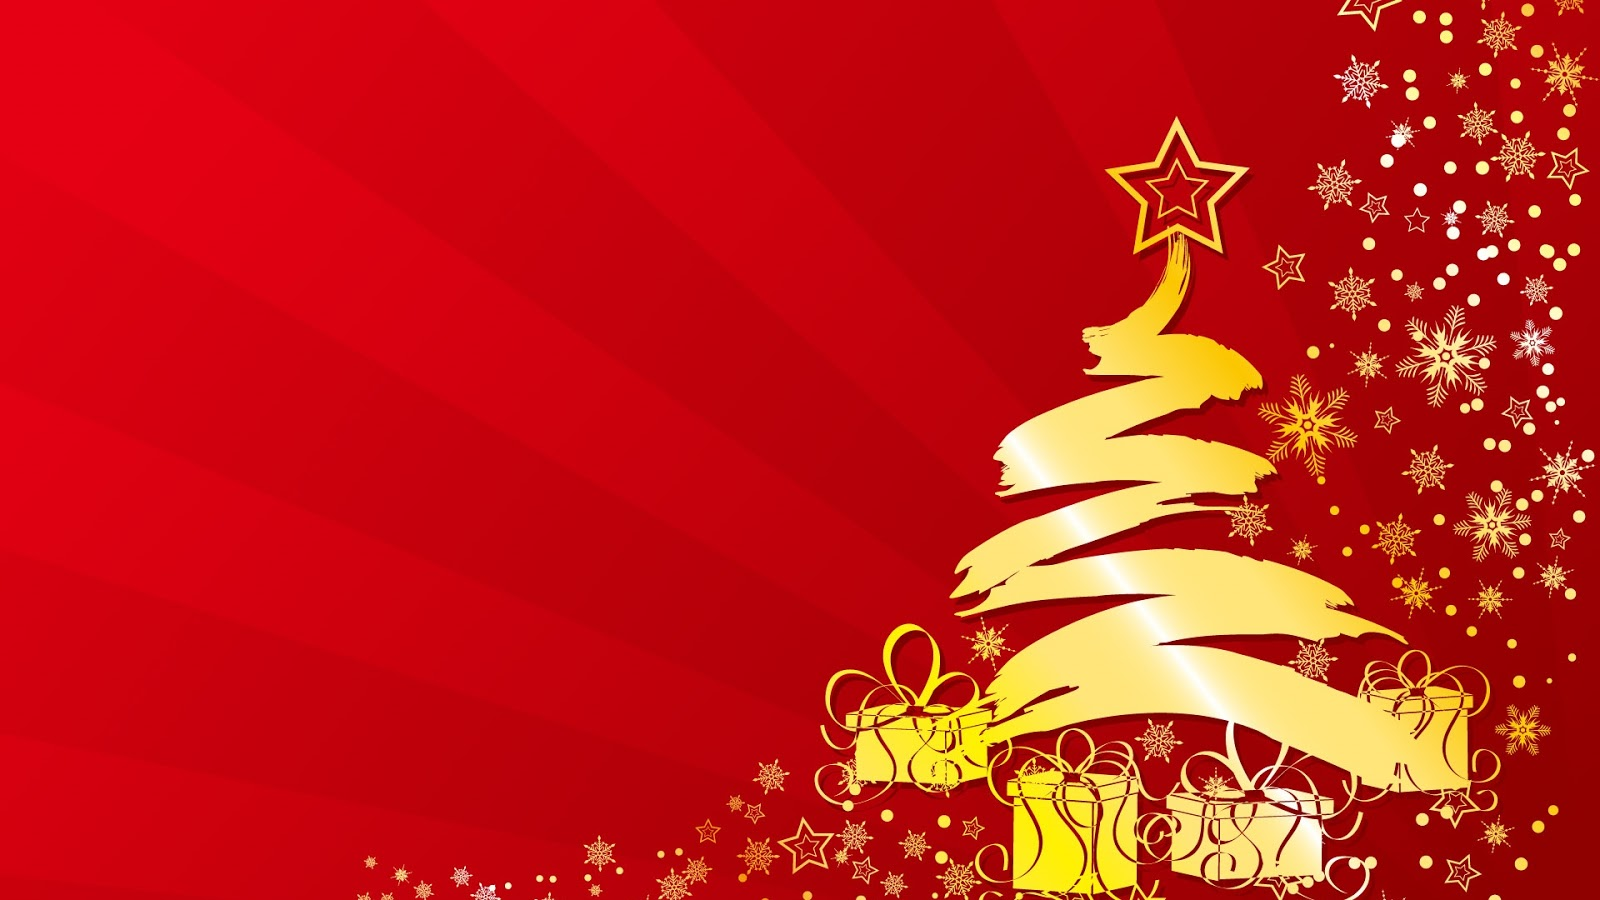 high definition wallpapers 1920x1080 christmas - photo #3